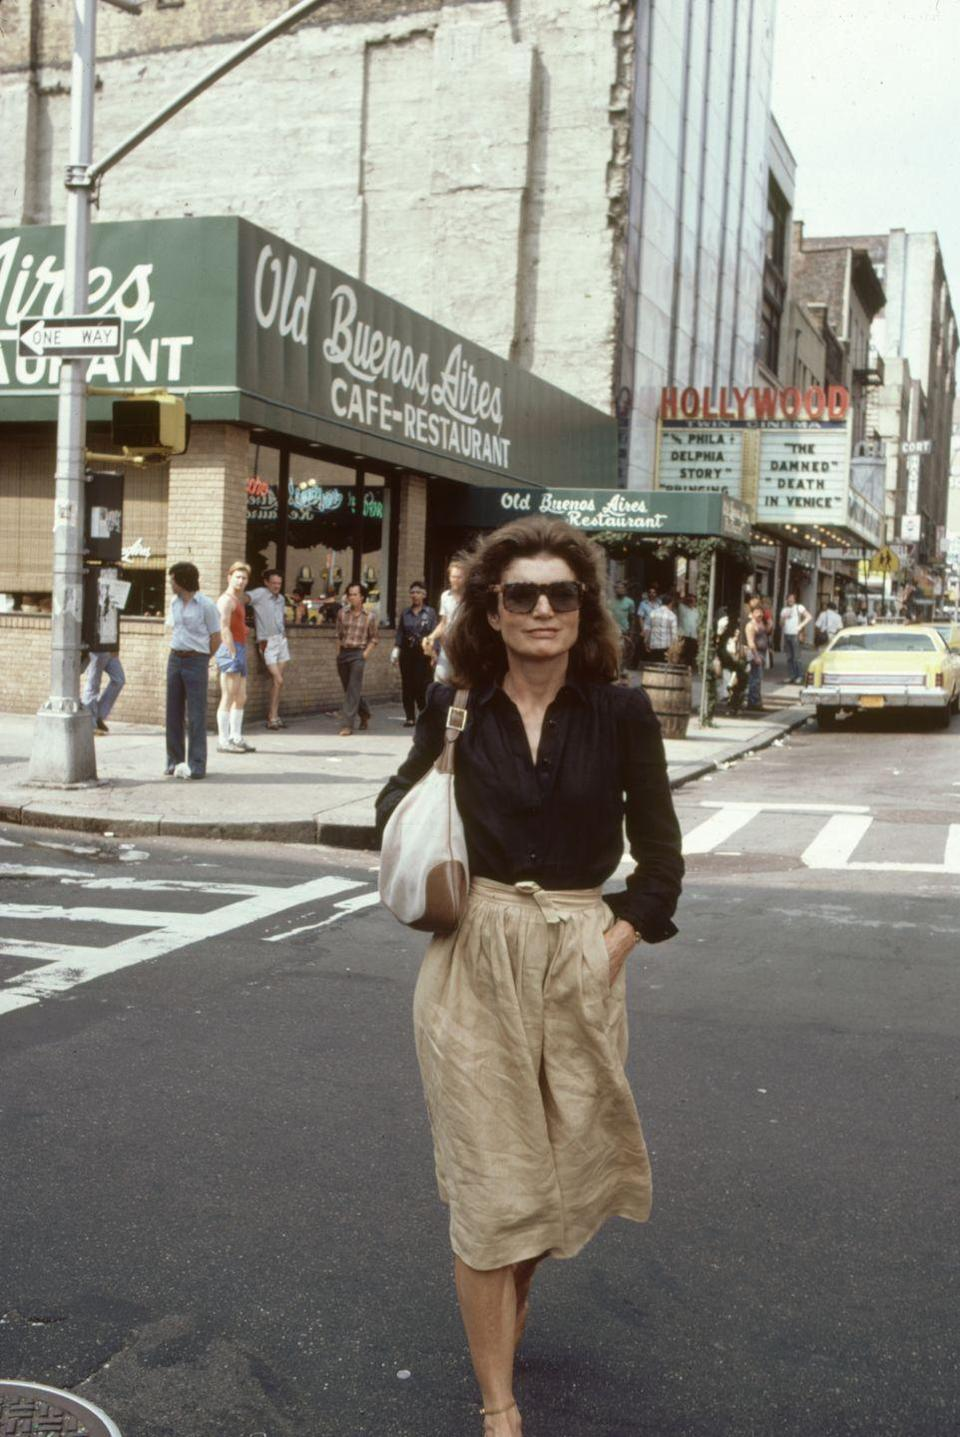 """<p>After her second husband's death in 1975, Jackie moved to New York to pursue a <a href=""""http://www.history.com/news/10-things-you-may-not-know-about-jacqueline-kennedy-onassis"""" rel=""""nofollow noopener"""" target=""""_blank"""" data-ylk=""""slk:book-editing career"""" class=""""link rapid-noclick-resp"""">book-editing career</a>. She started out as a consulting editor and then eventually moved up to the position of Senior Editor which she held until her death in 1994. </p>"""